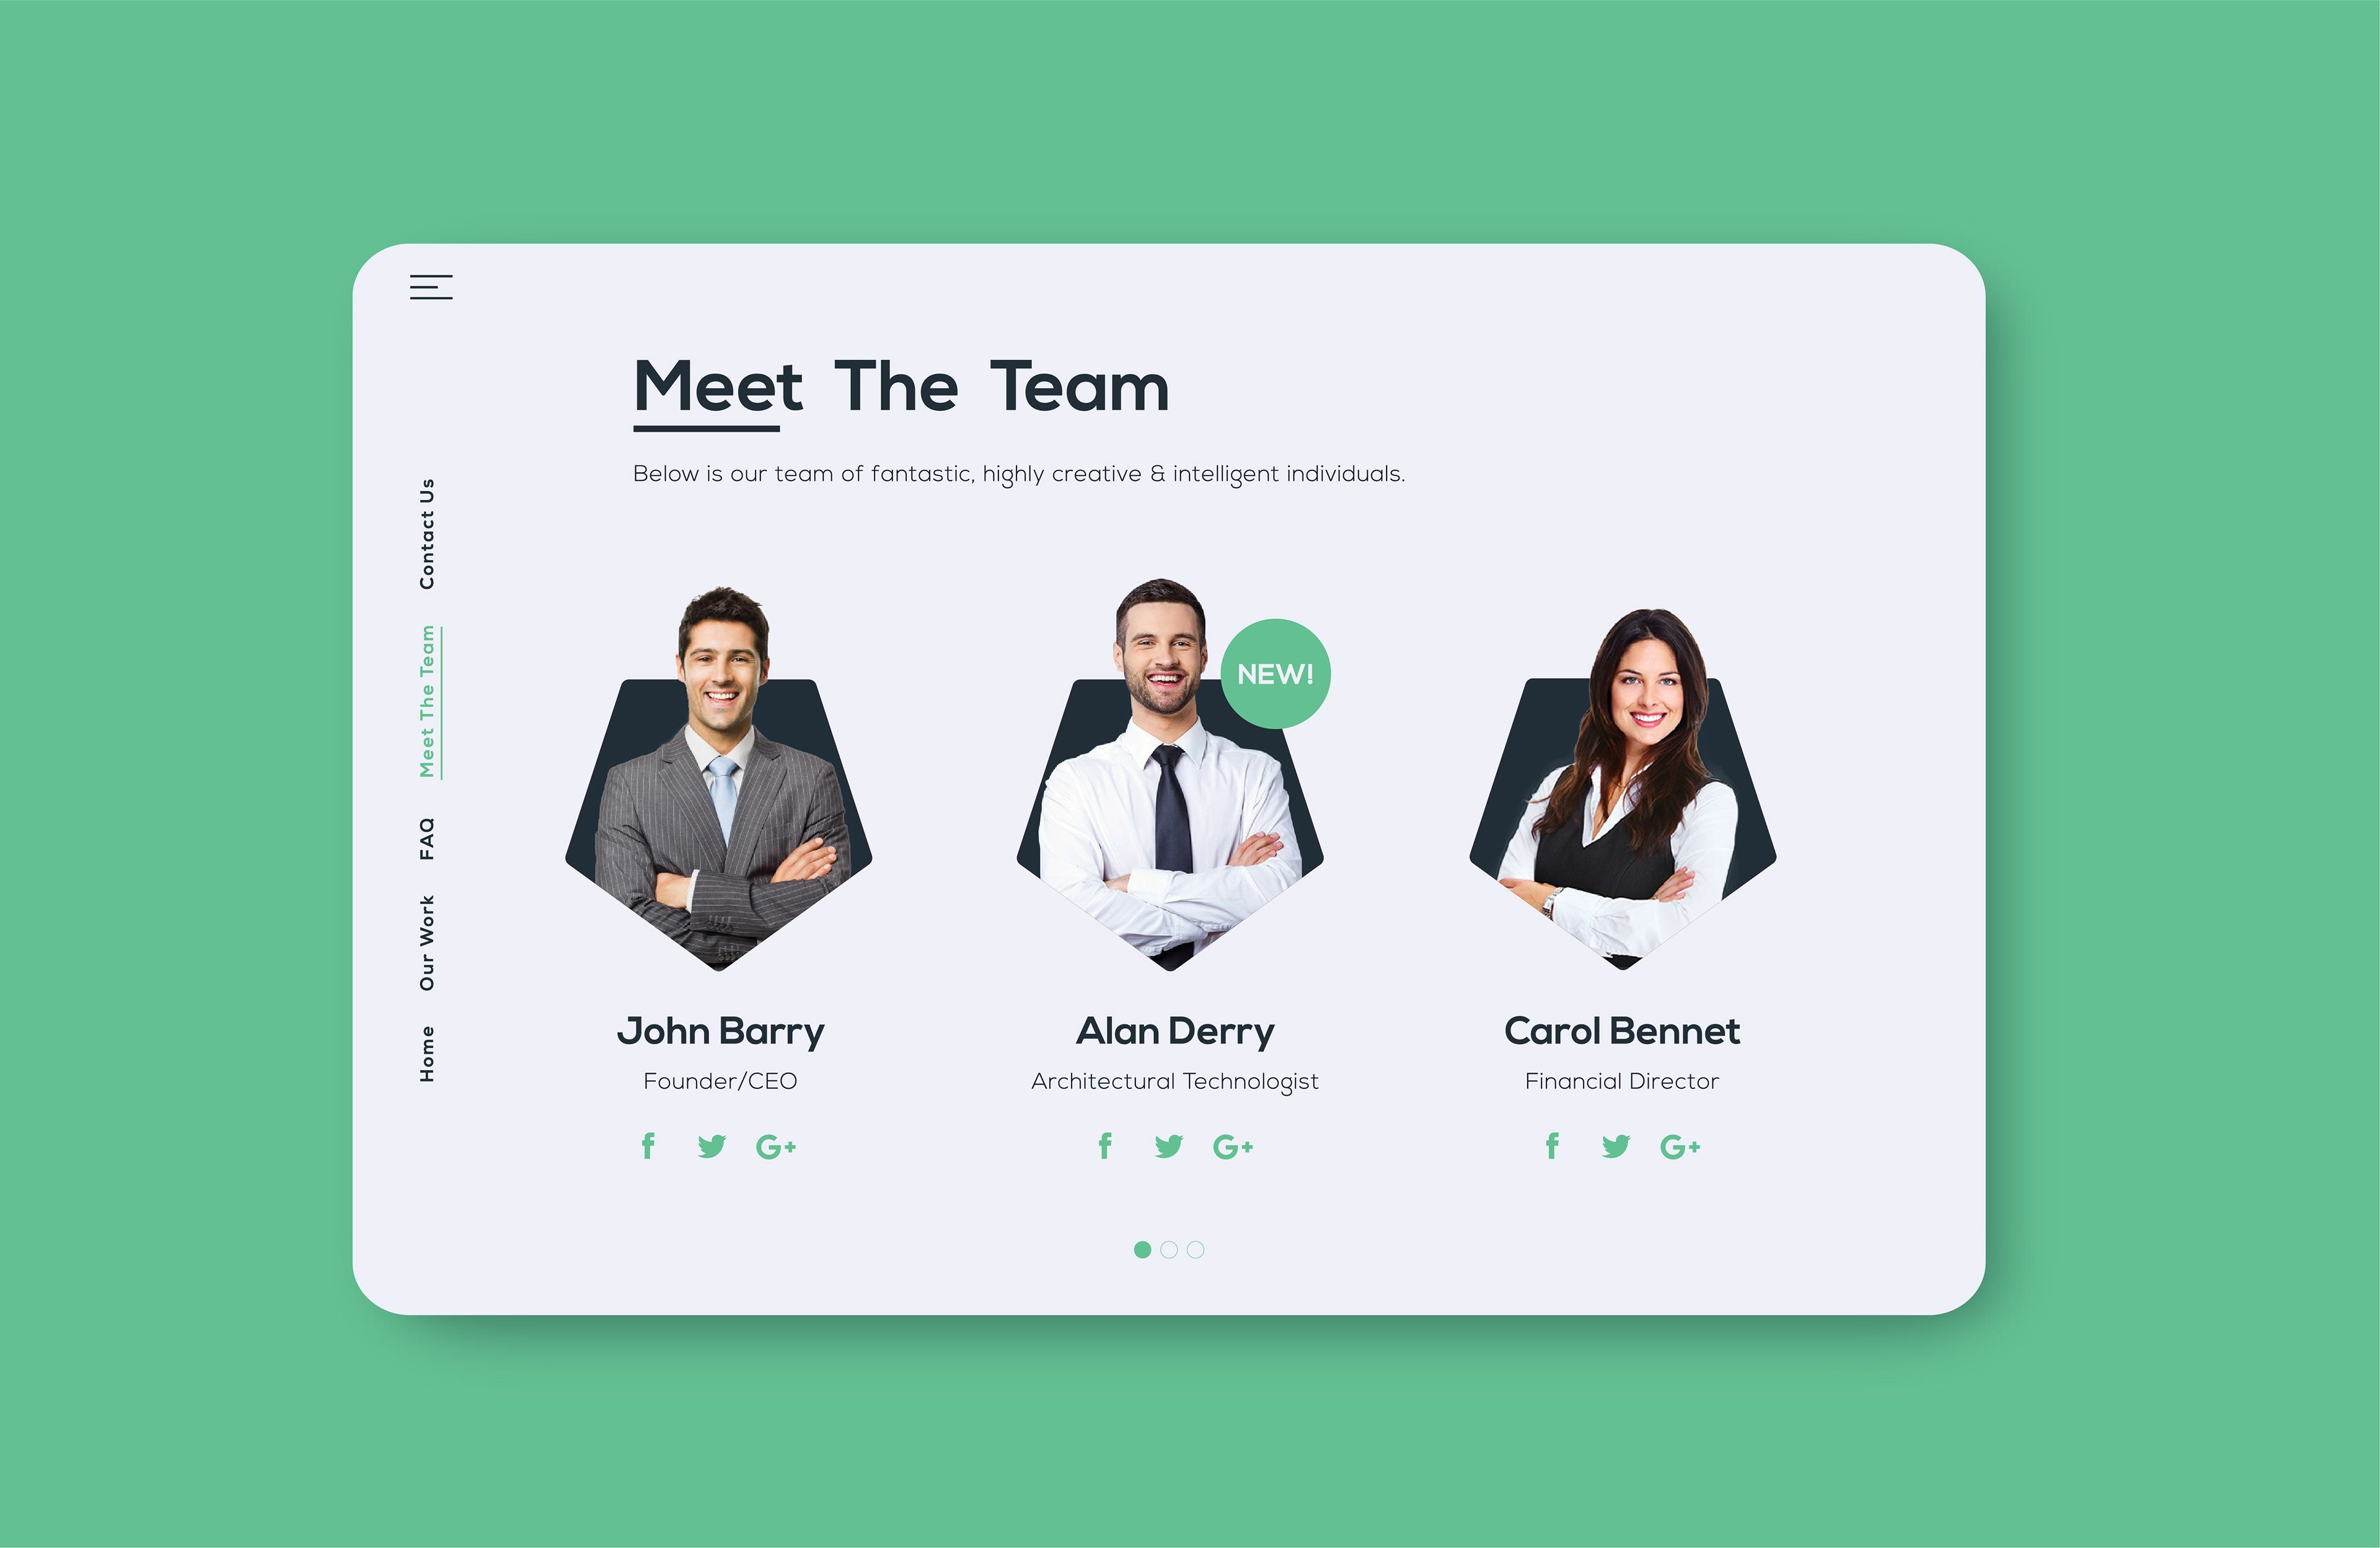 Meet The Team Page Design By Thomas Johnston Design Thomas Johnston Design Is A Creative Graphic De Web Design Graphic Design Branding Creative Graphic Design